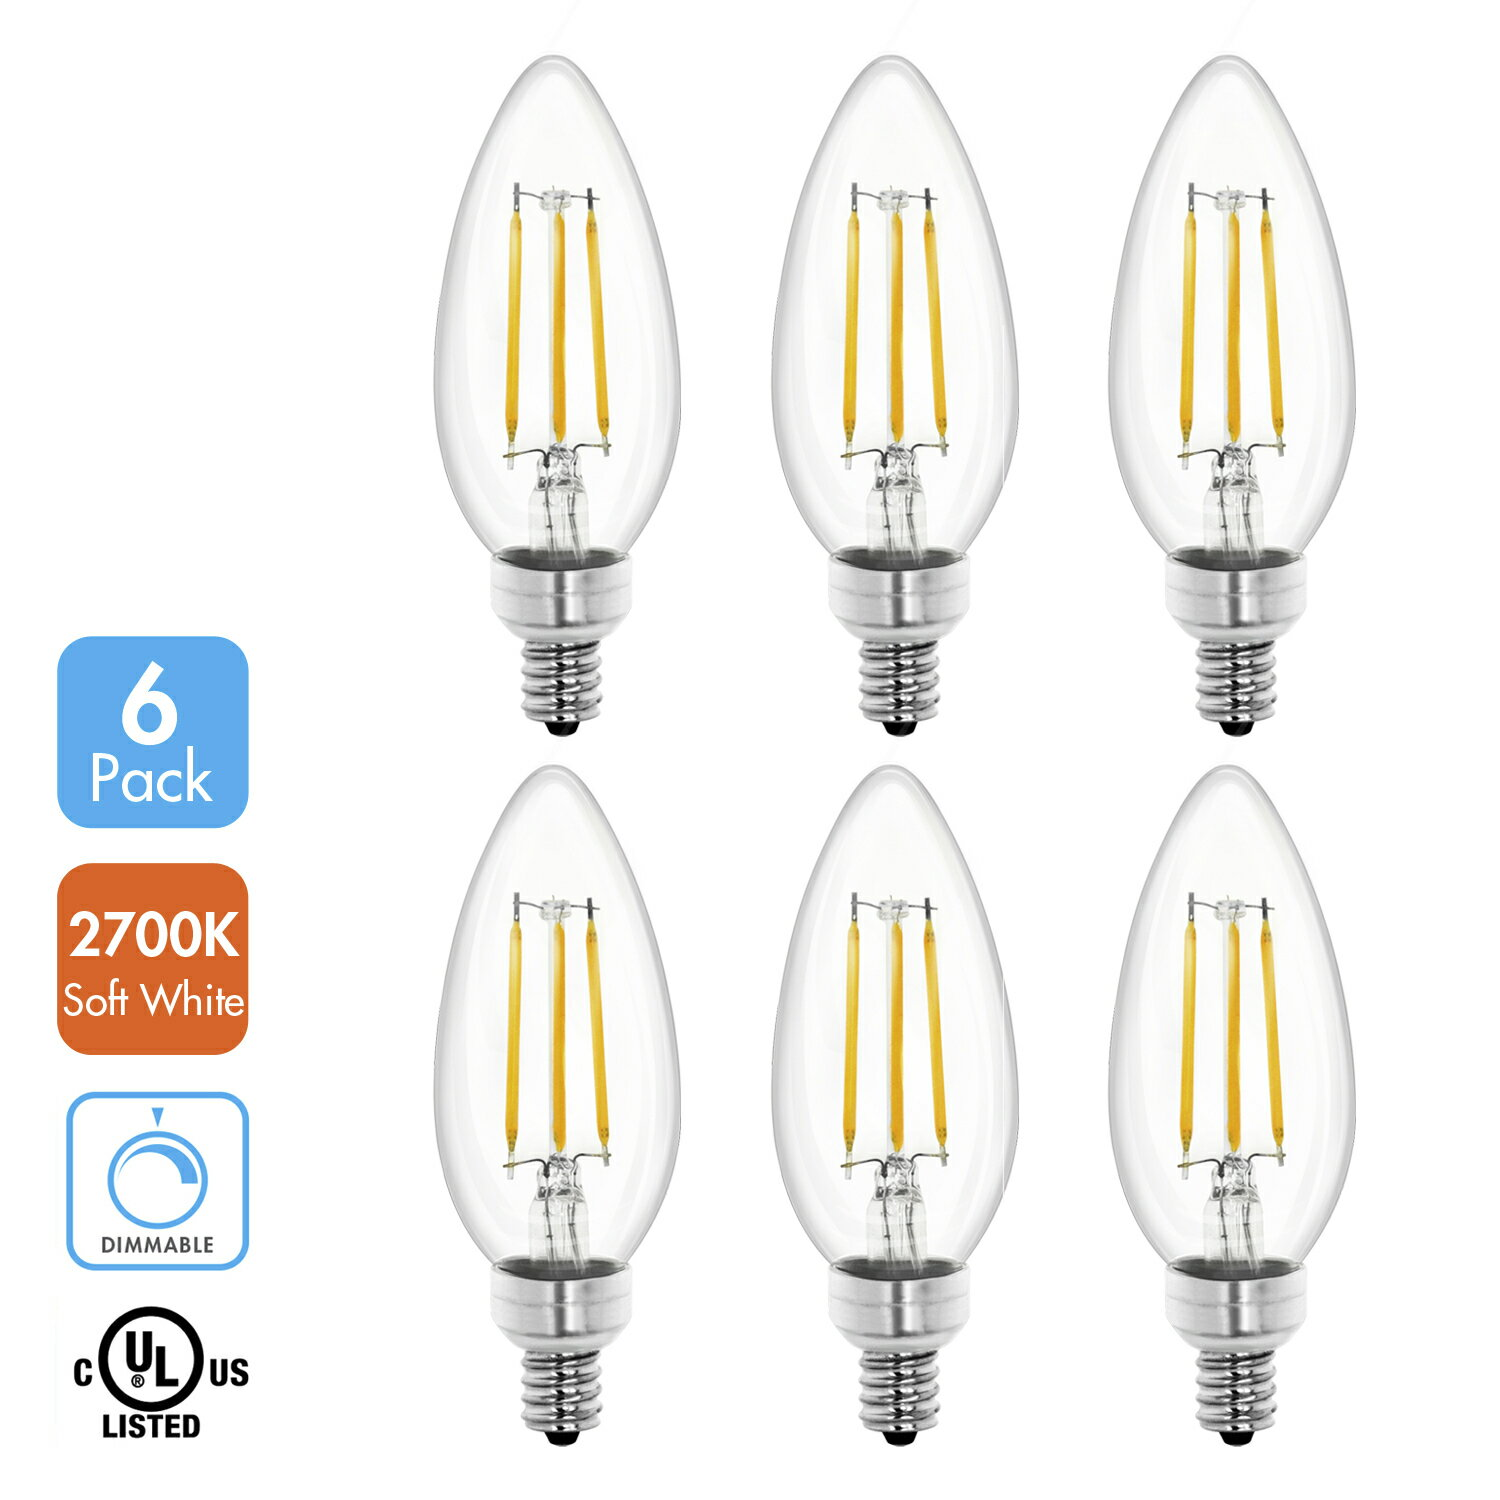 Tenergy Dimmable Led Candelabra Light Bulbs 4w 40 Watt Equivalent Warm White Soft